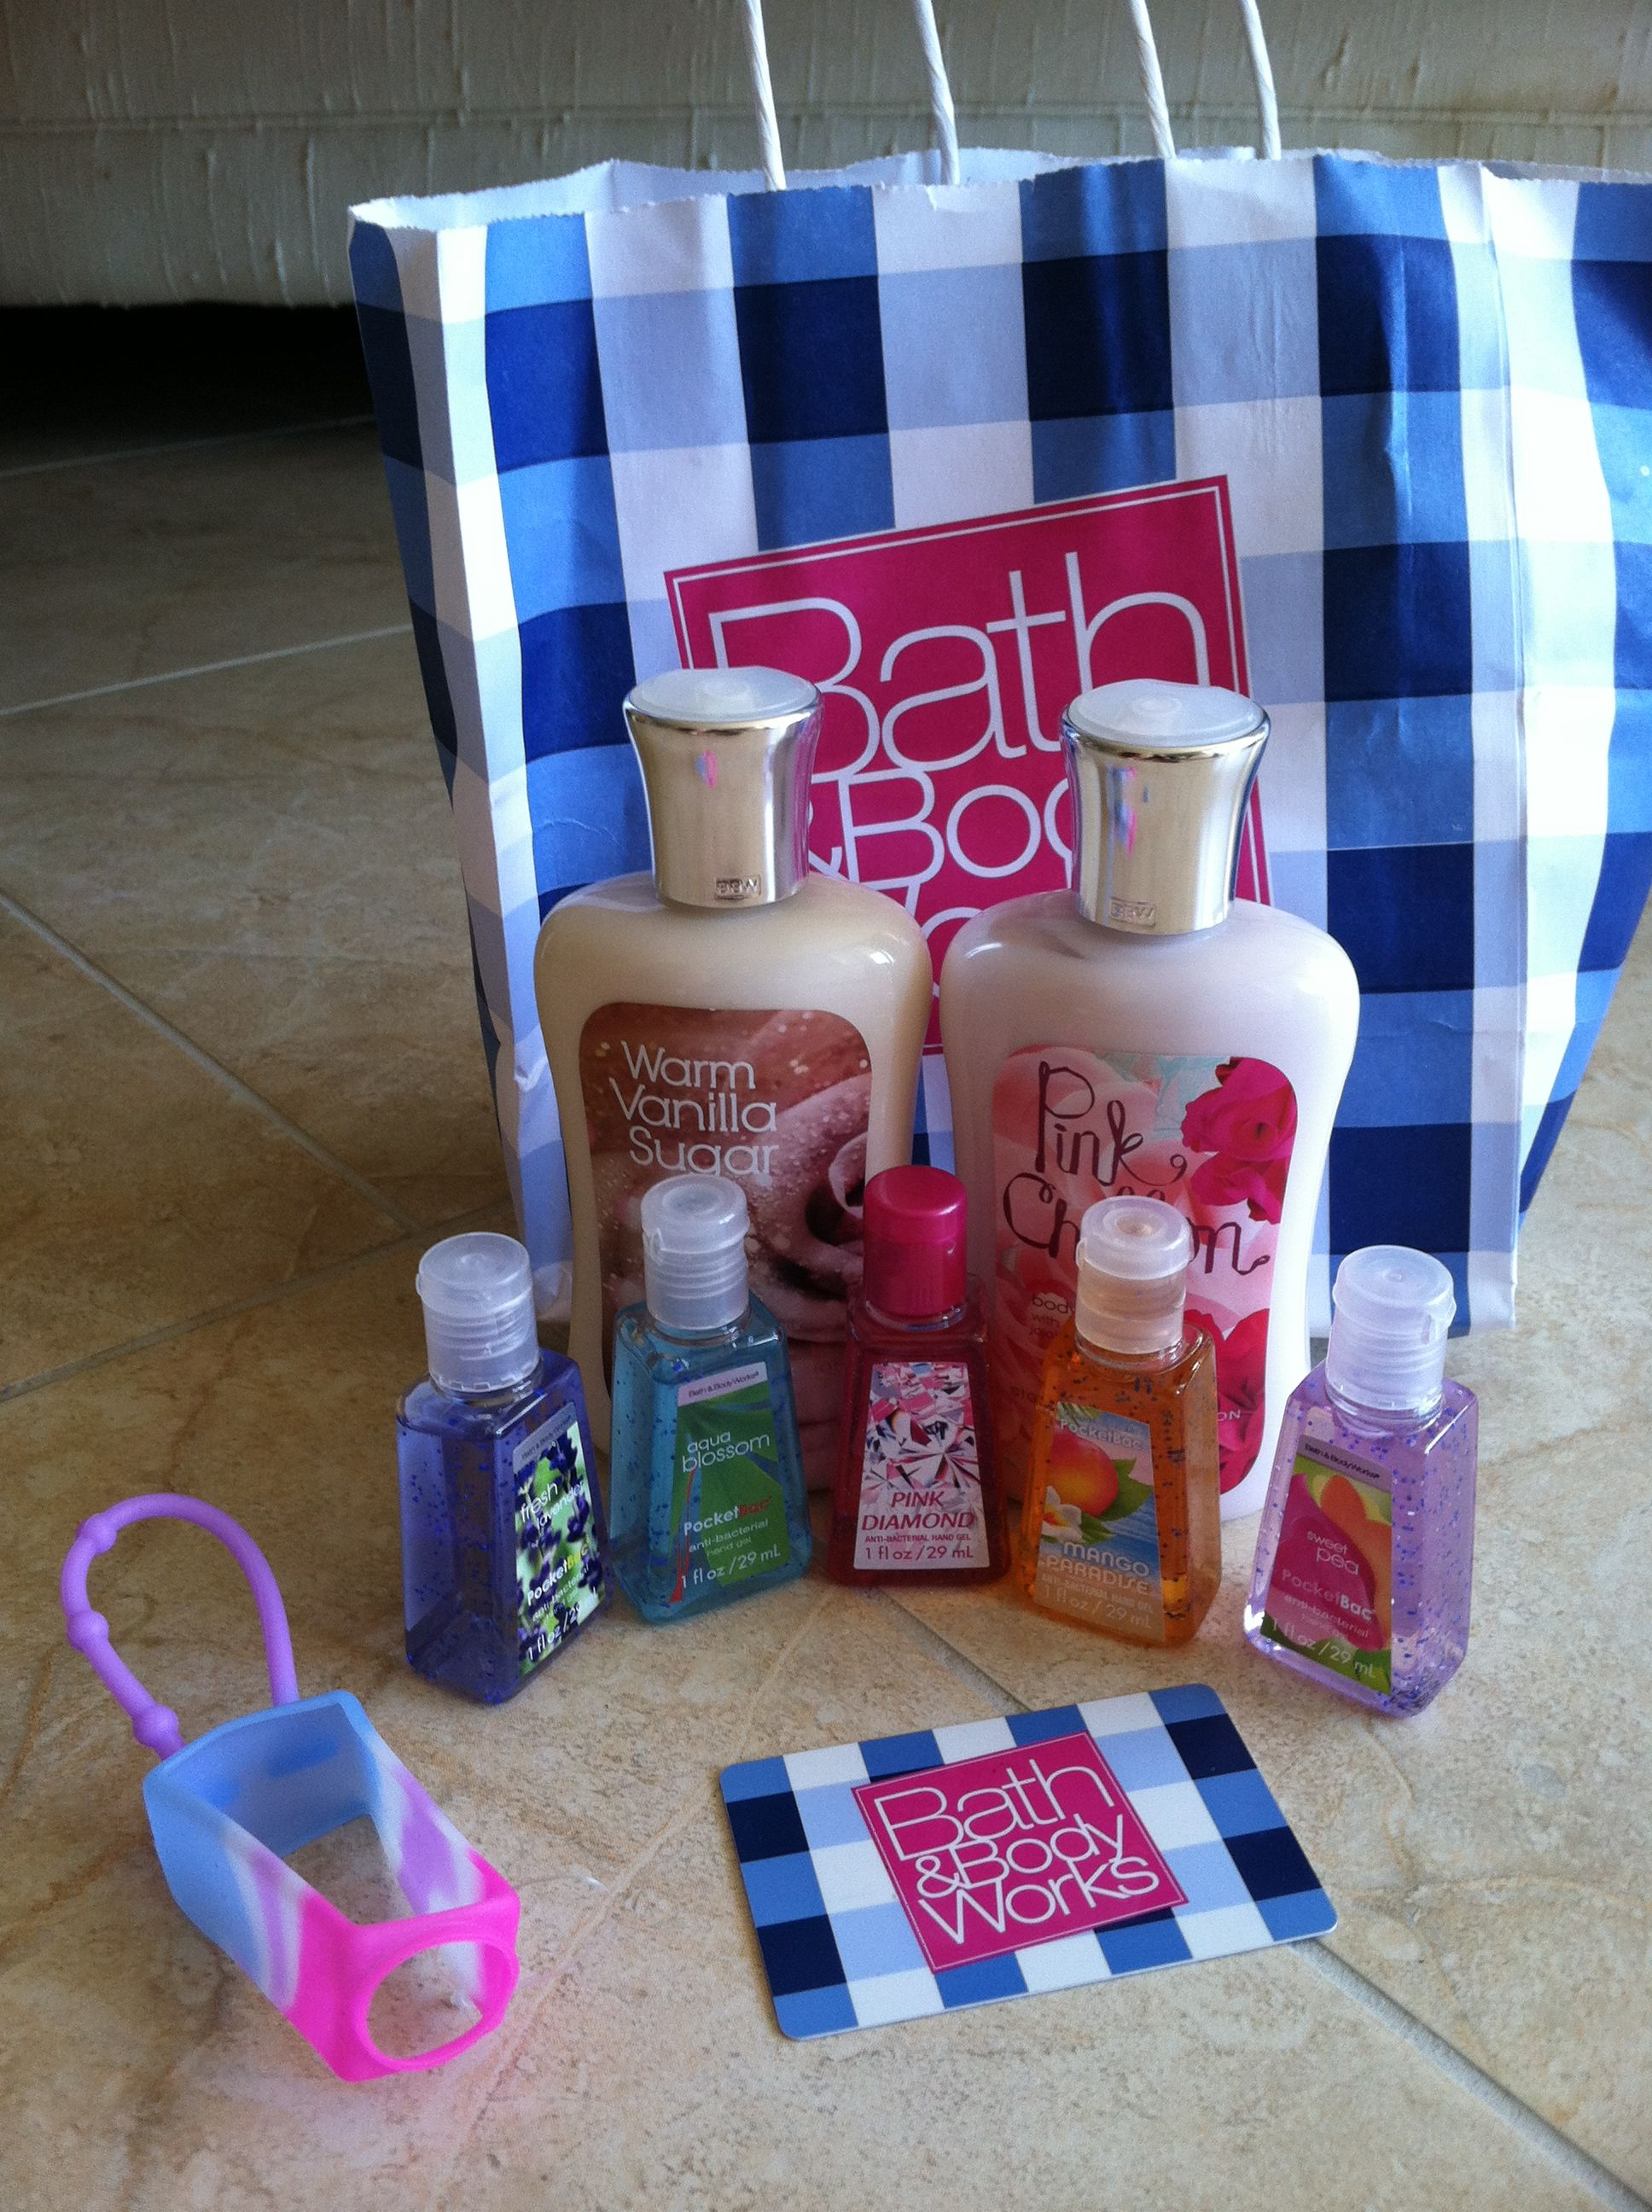 Huge Bath And Body Works Haul Warm Vanilla Sugar Lotion Pink